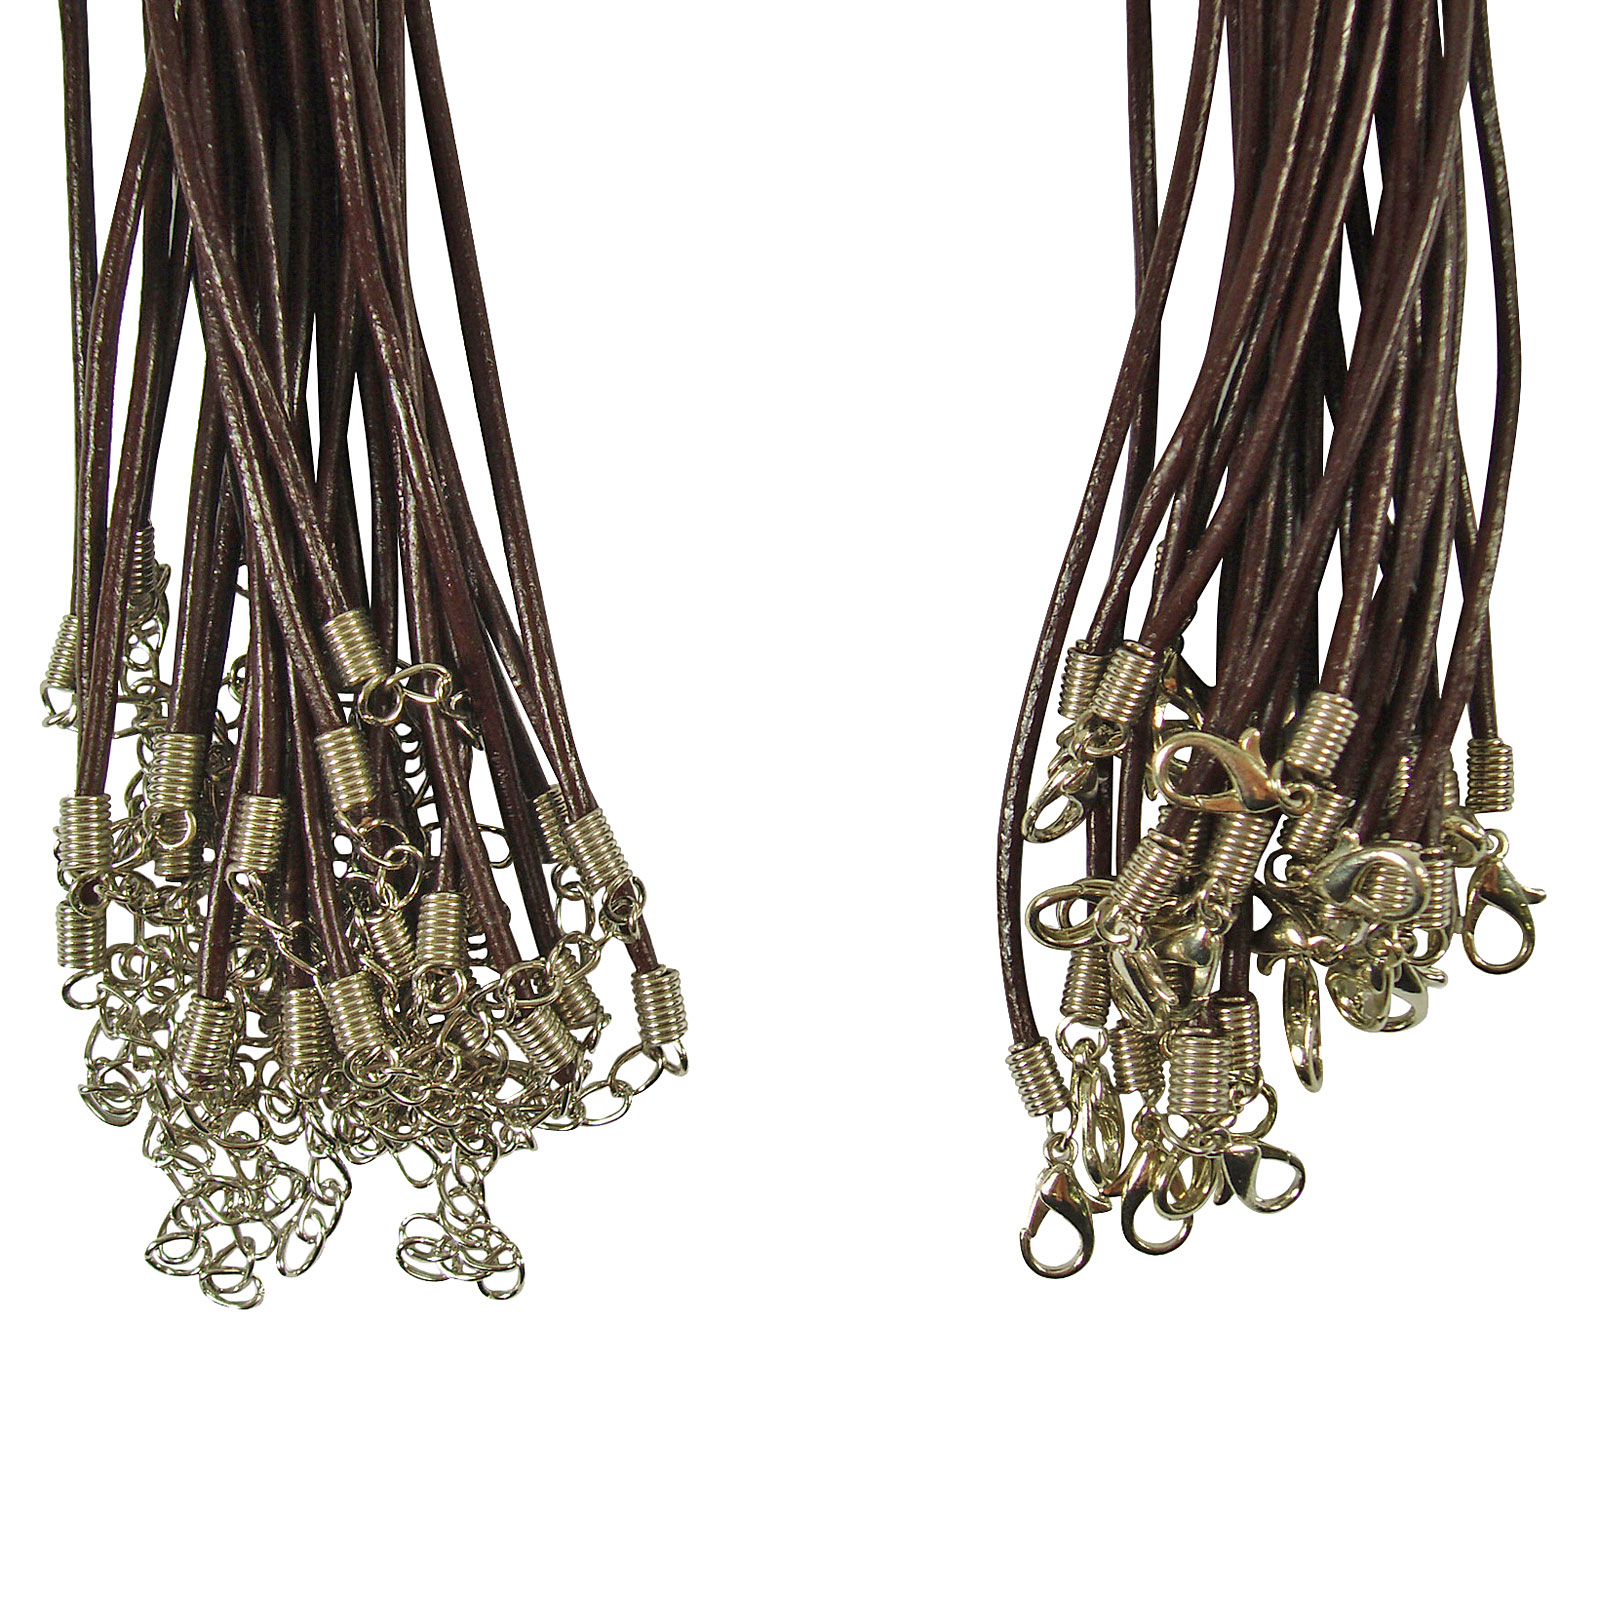 25 x Leather Round Thong Necklace Cords - Lobster Clasp